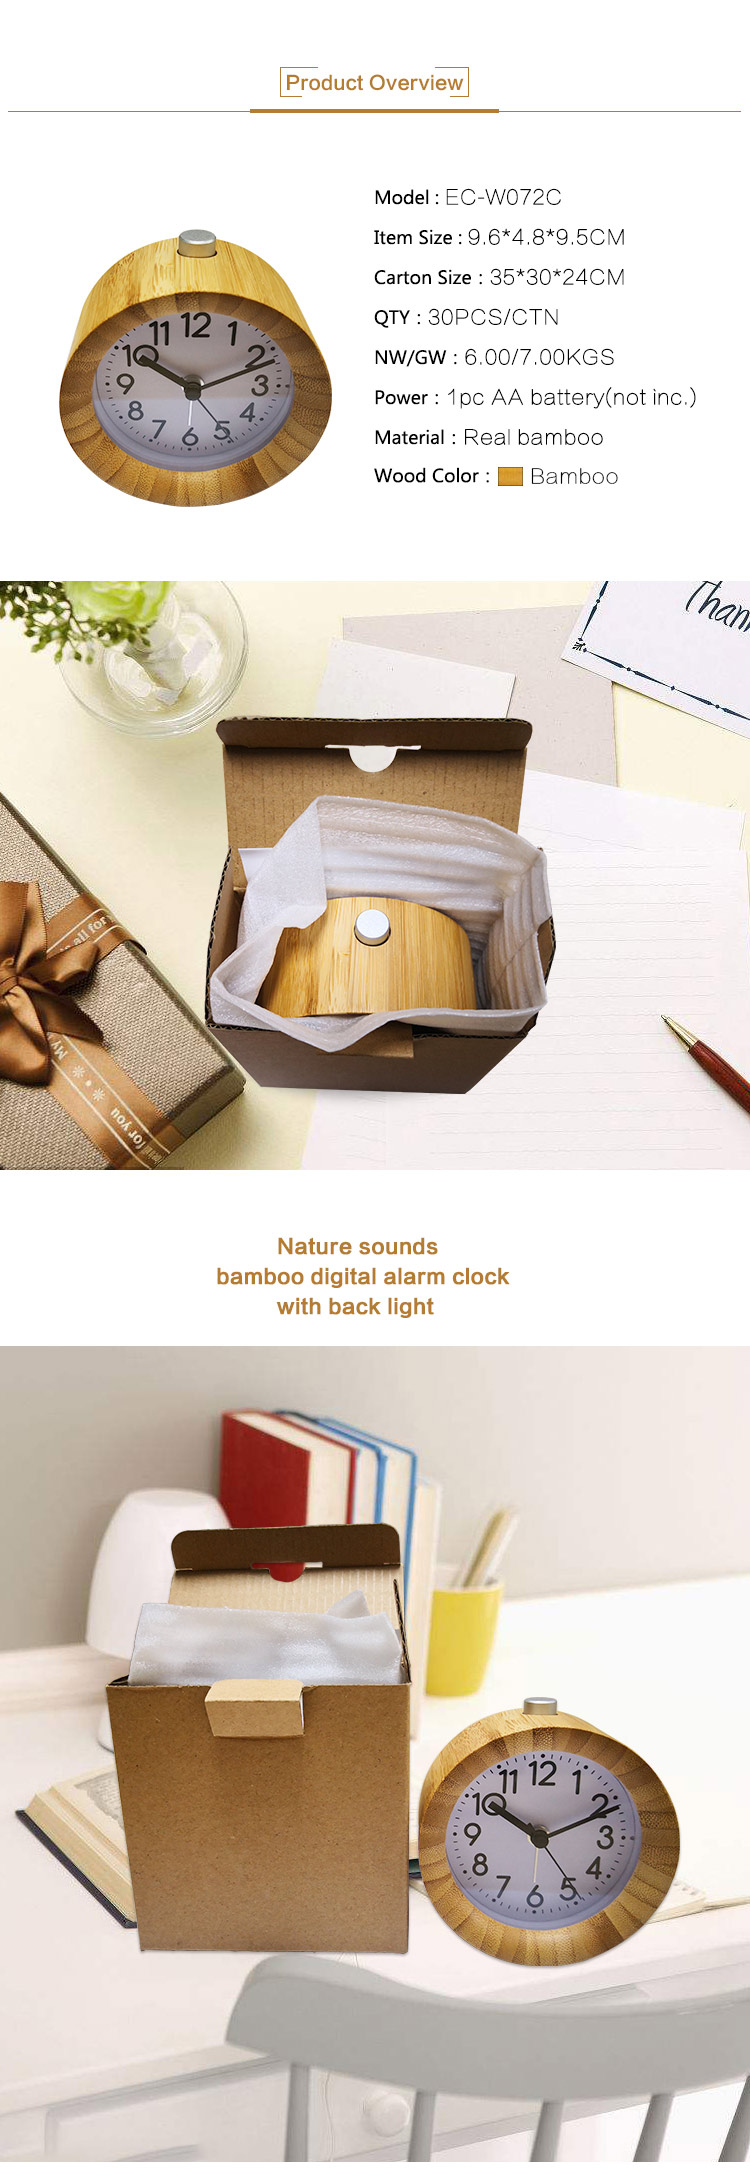 desktop quartz analog backlight alarm clock